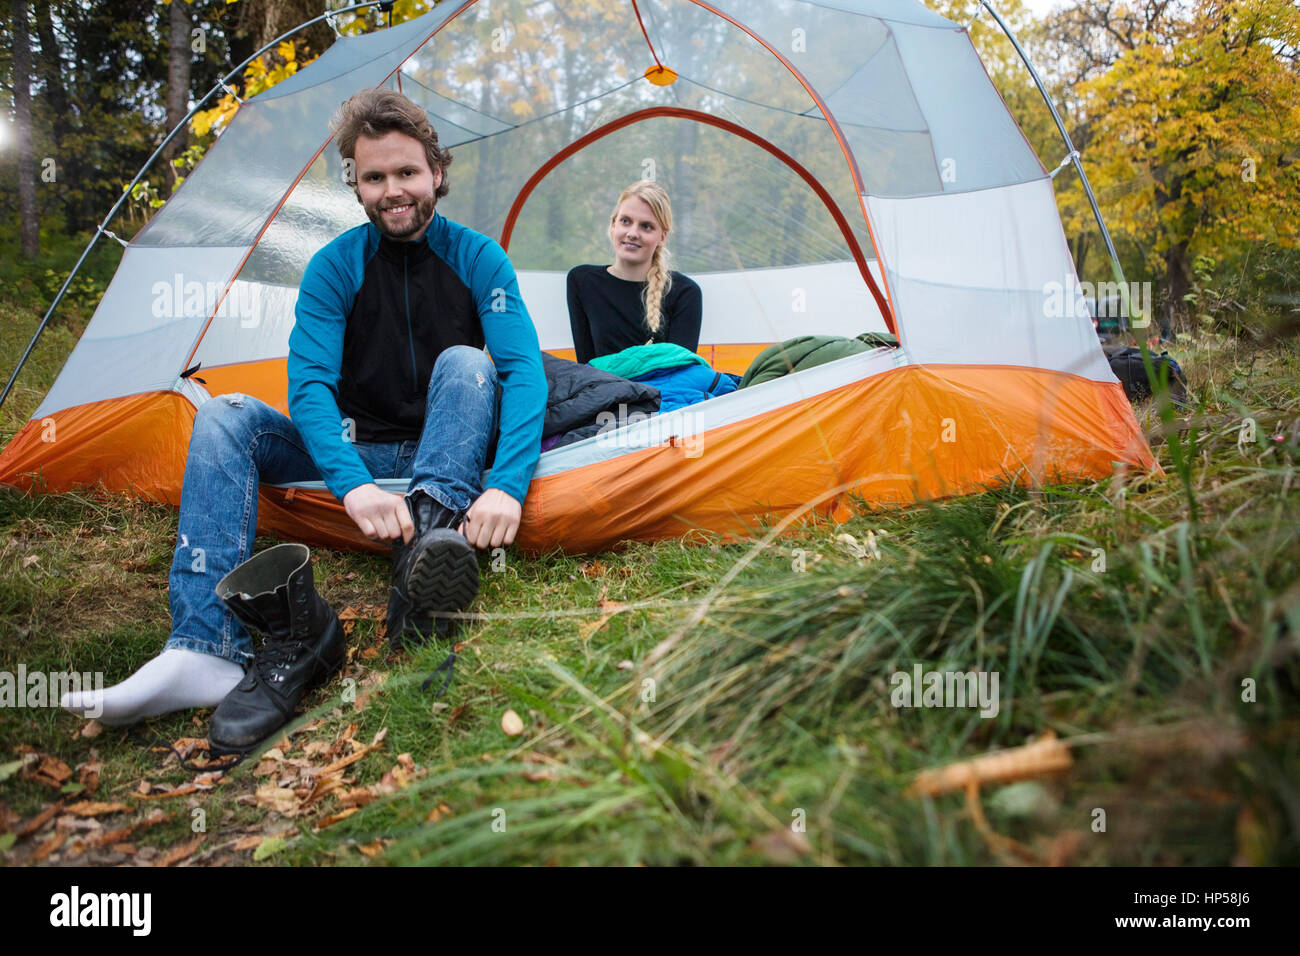 Man Wearing Boot While Woman Relaxing In Tent - Stock Image